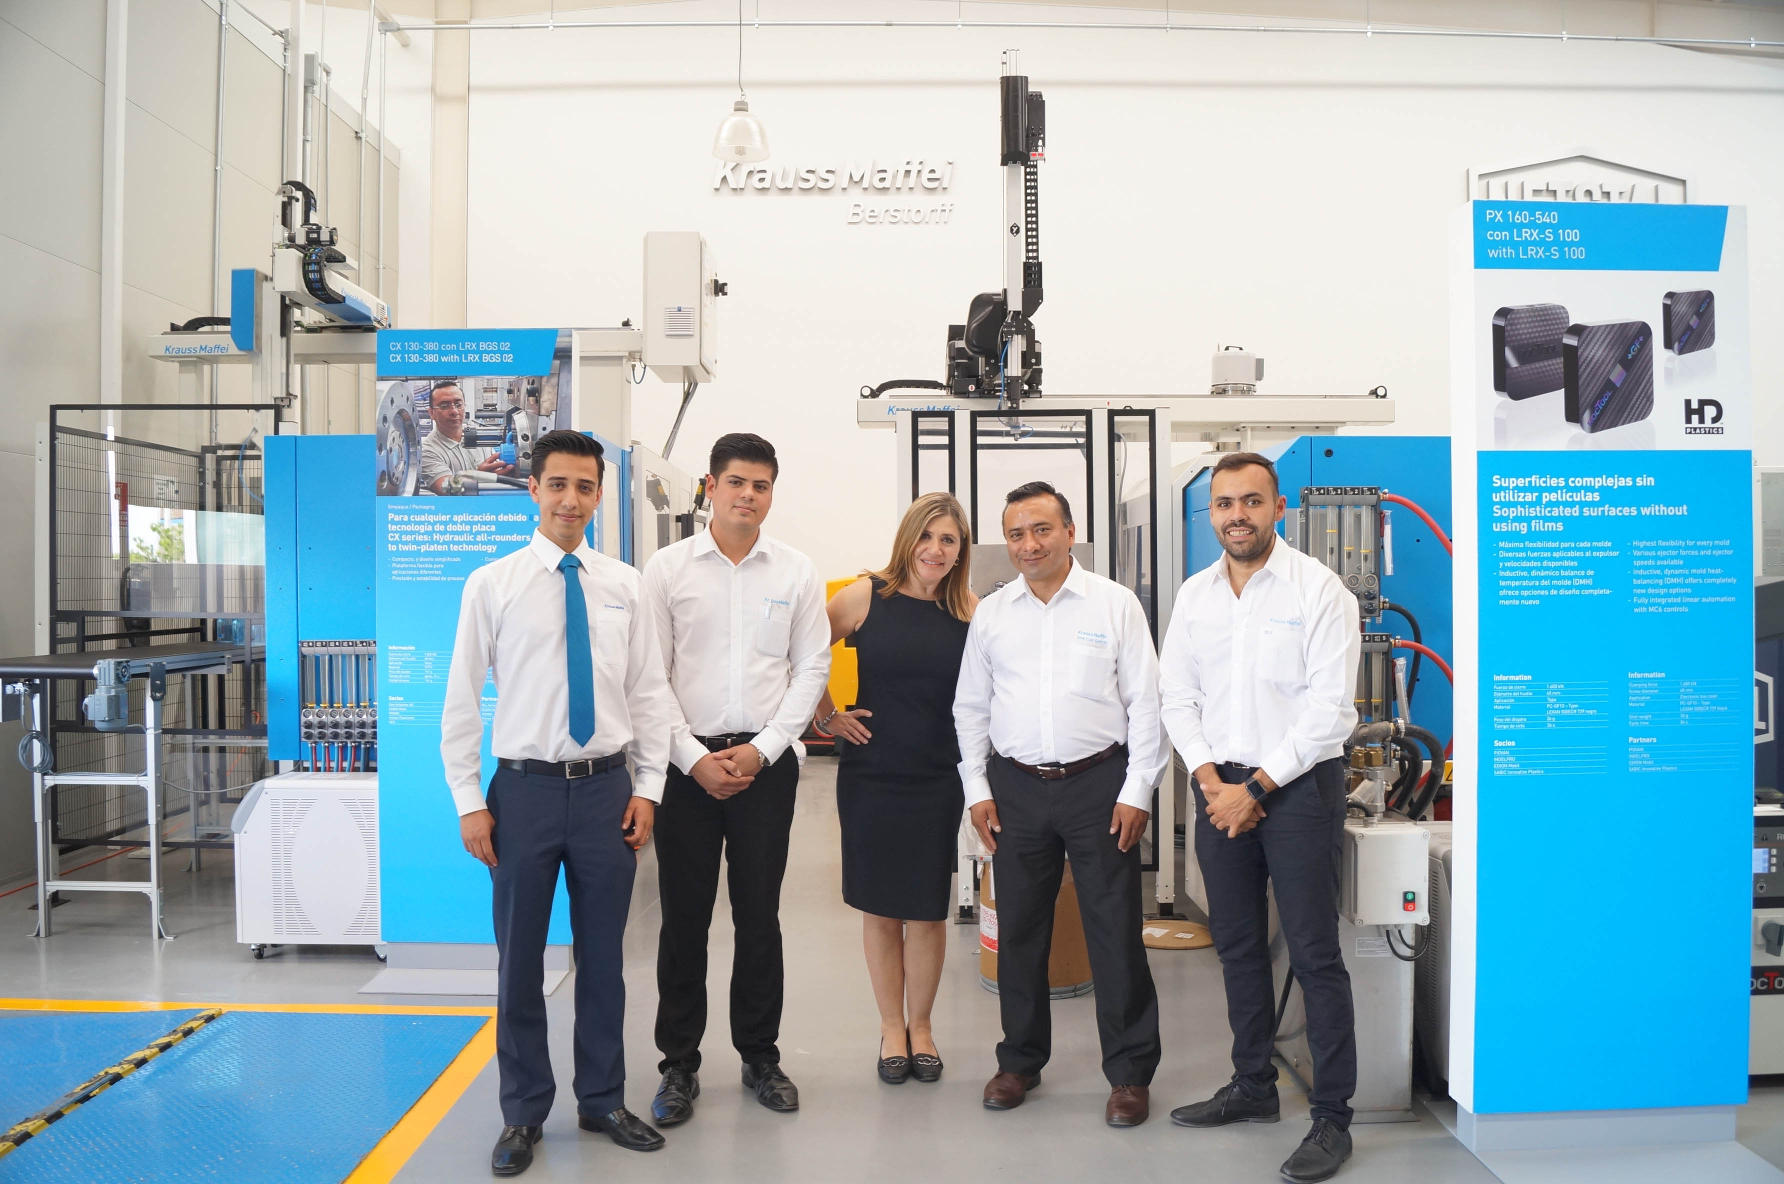 Pleased with the resounding success of the Open House: Enrique Ponton (Automation Mexico), Carlos Schimpf (Training Cordinator), Ana Claudia Menconi (Training & Marketing Manager), Jose Luis Garcia (Senior Instructor) and Felipe Reyes (Marketing), photo: KraussMaffei Berstorff